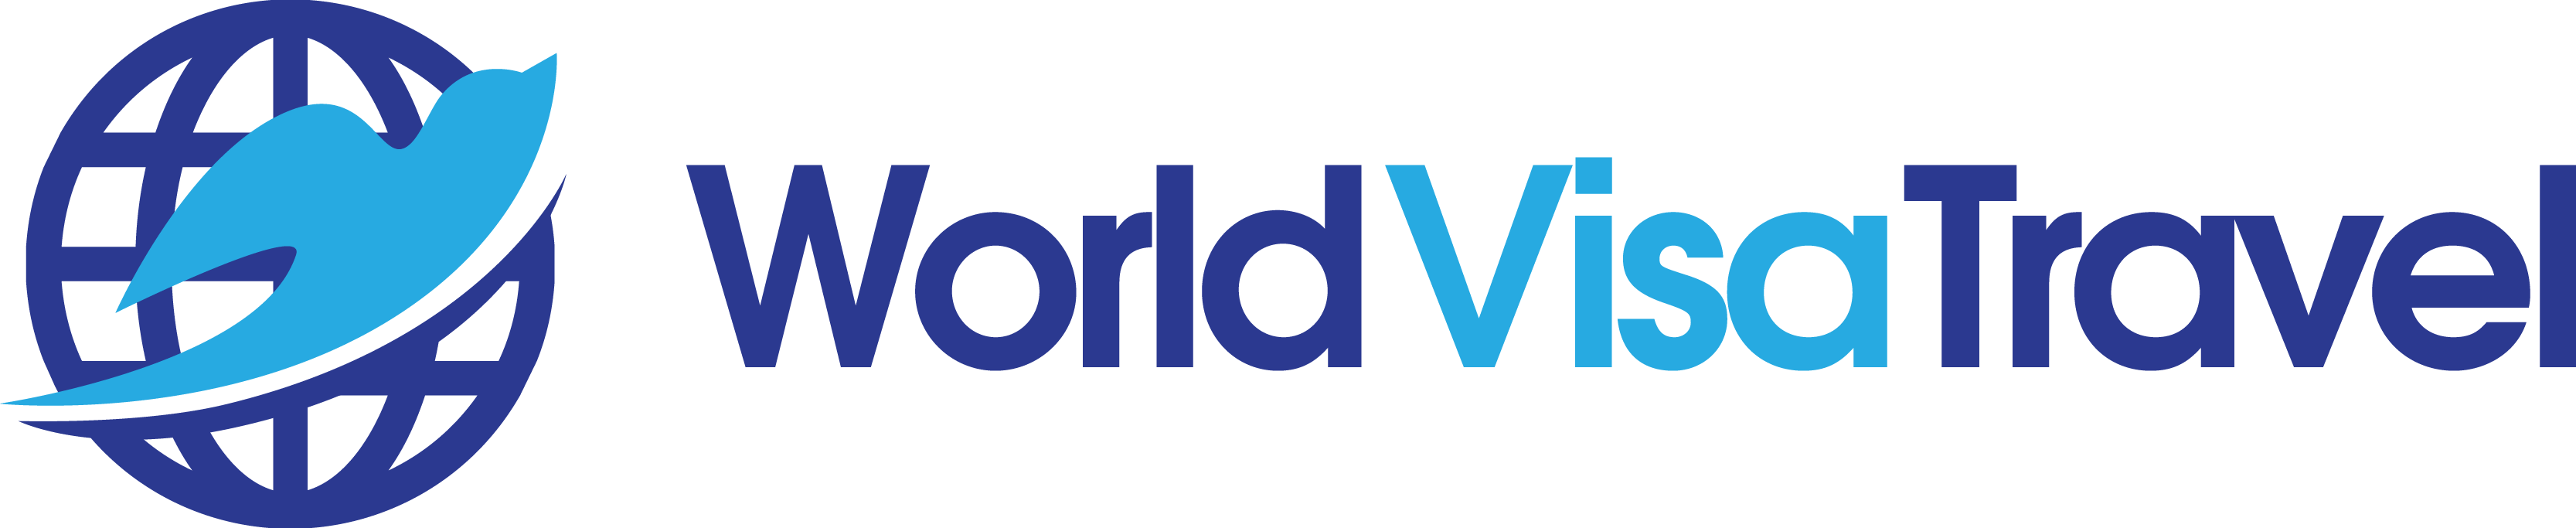 World Visa Travel, Inc.